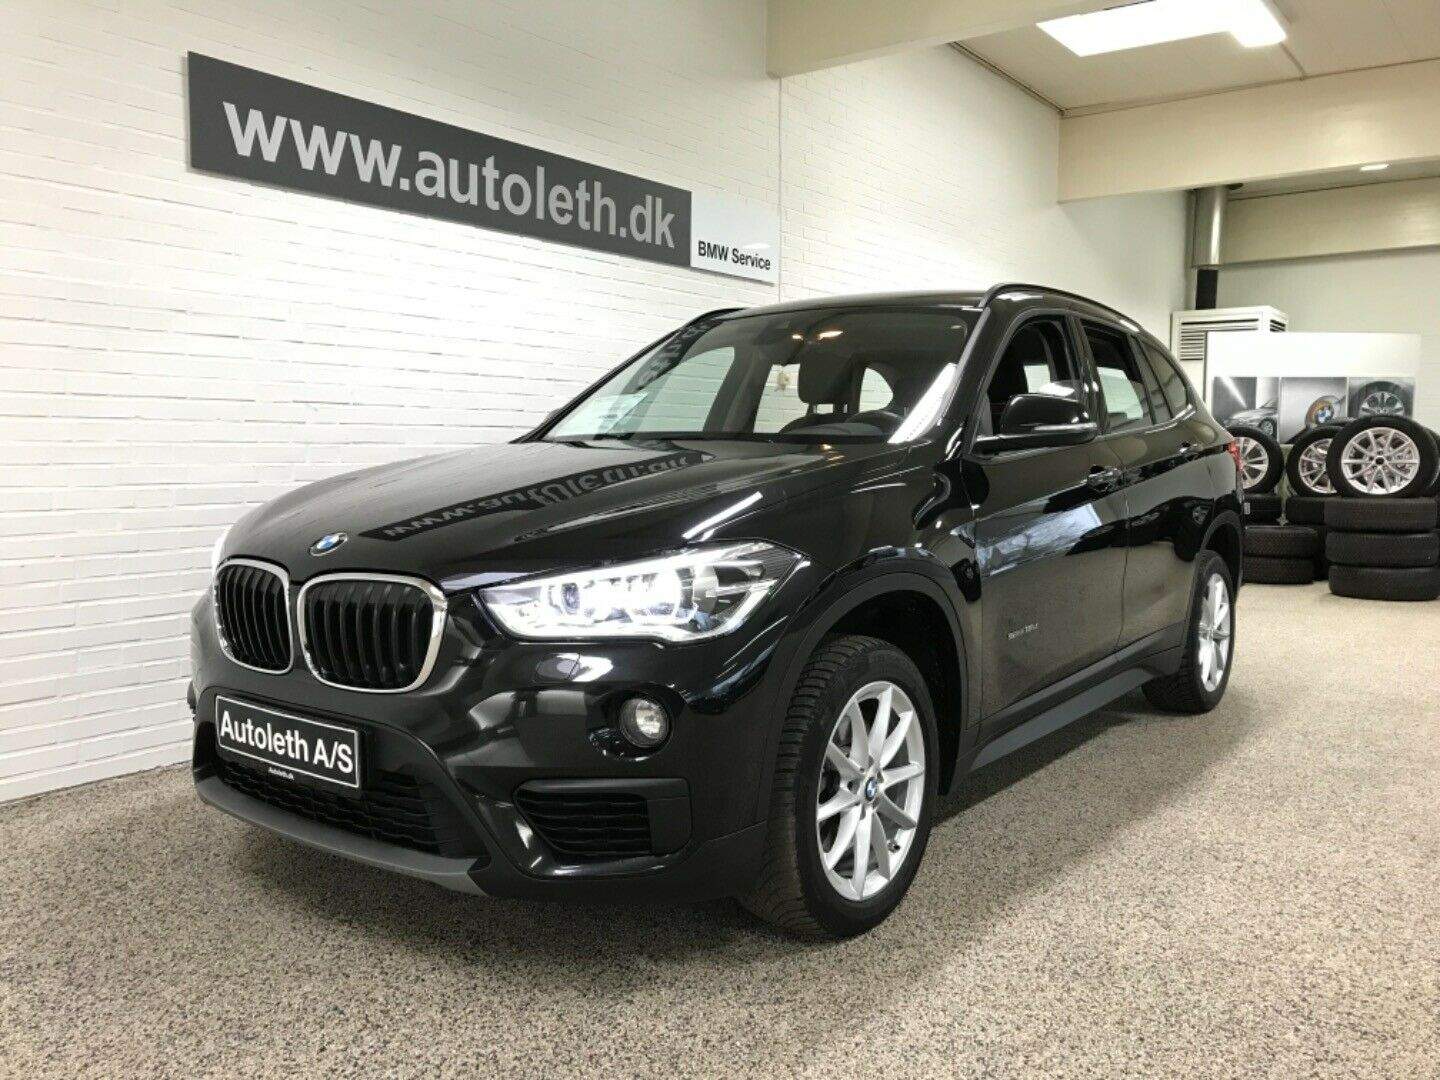 BMW X1 2,0 sDrive18d Advantage aut. 5d - 309.900 kr.